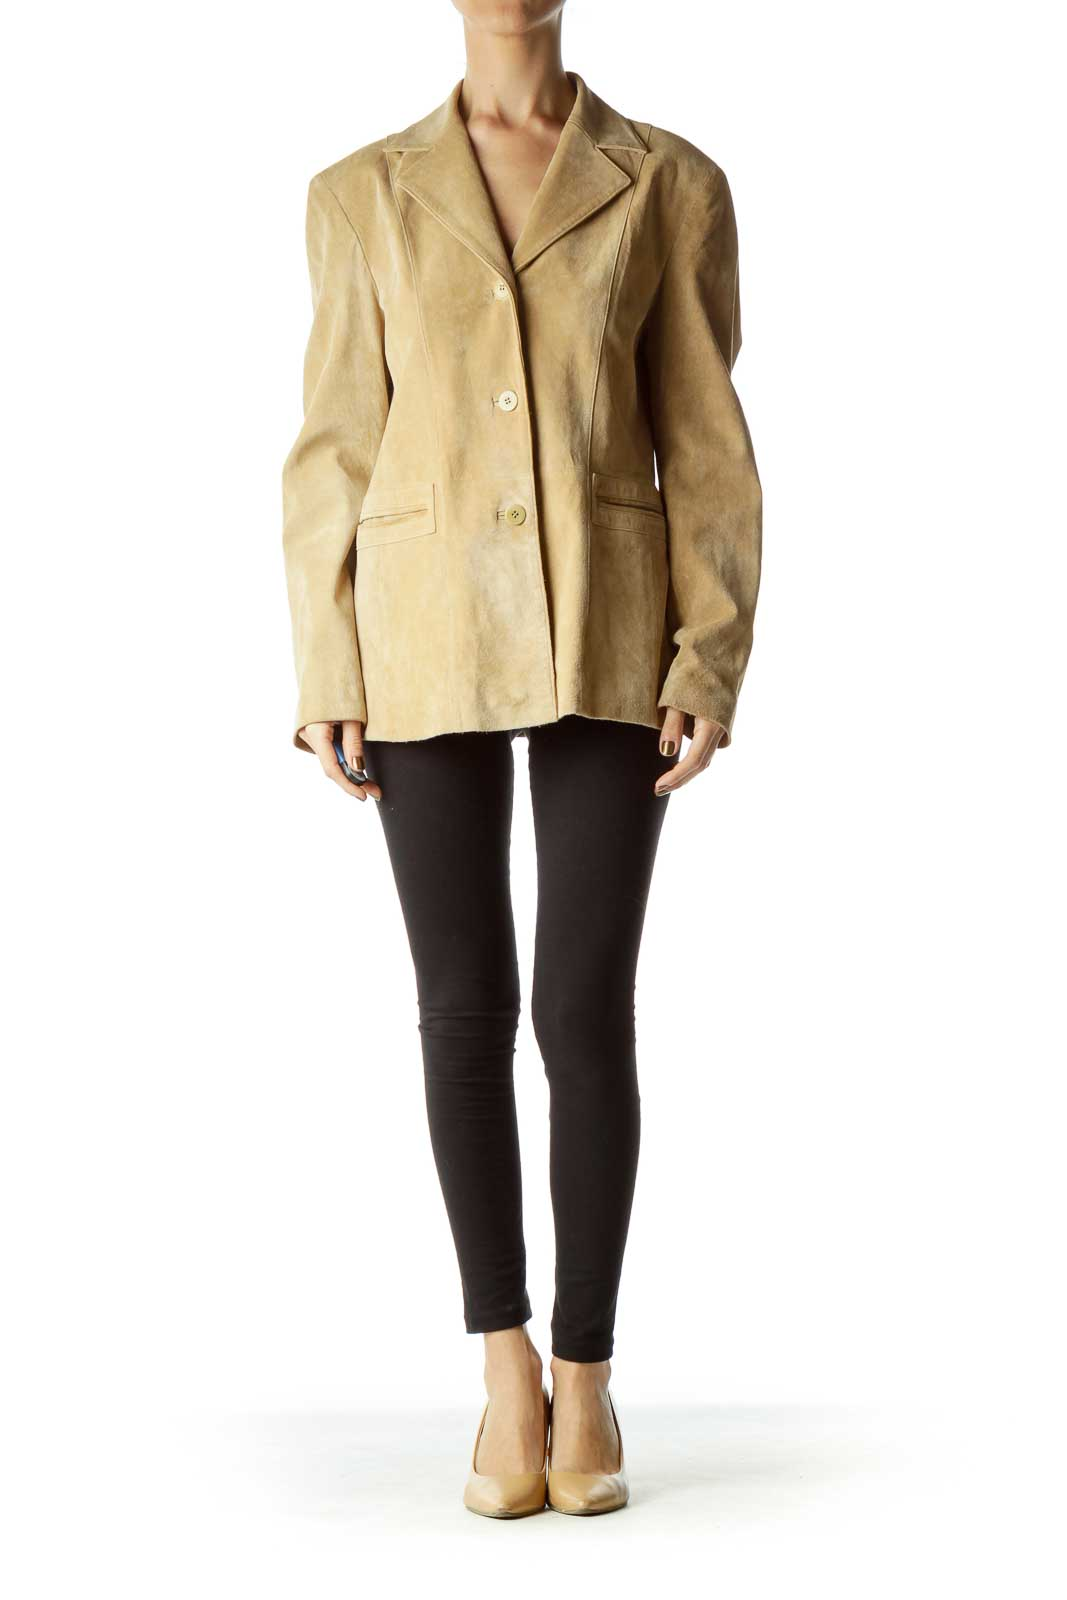 Beige Suede Shoulder-Padded Blazer